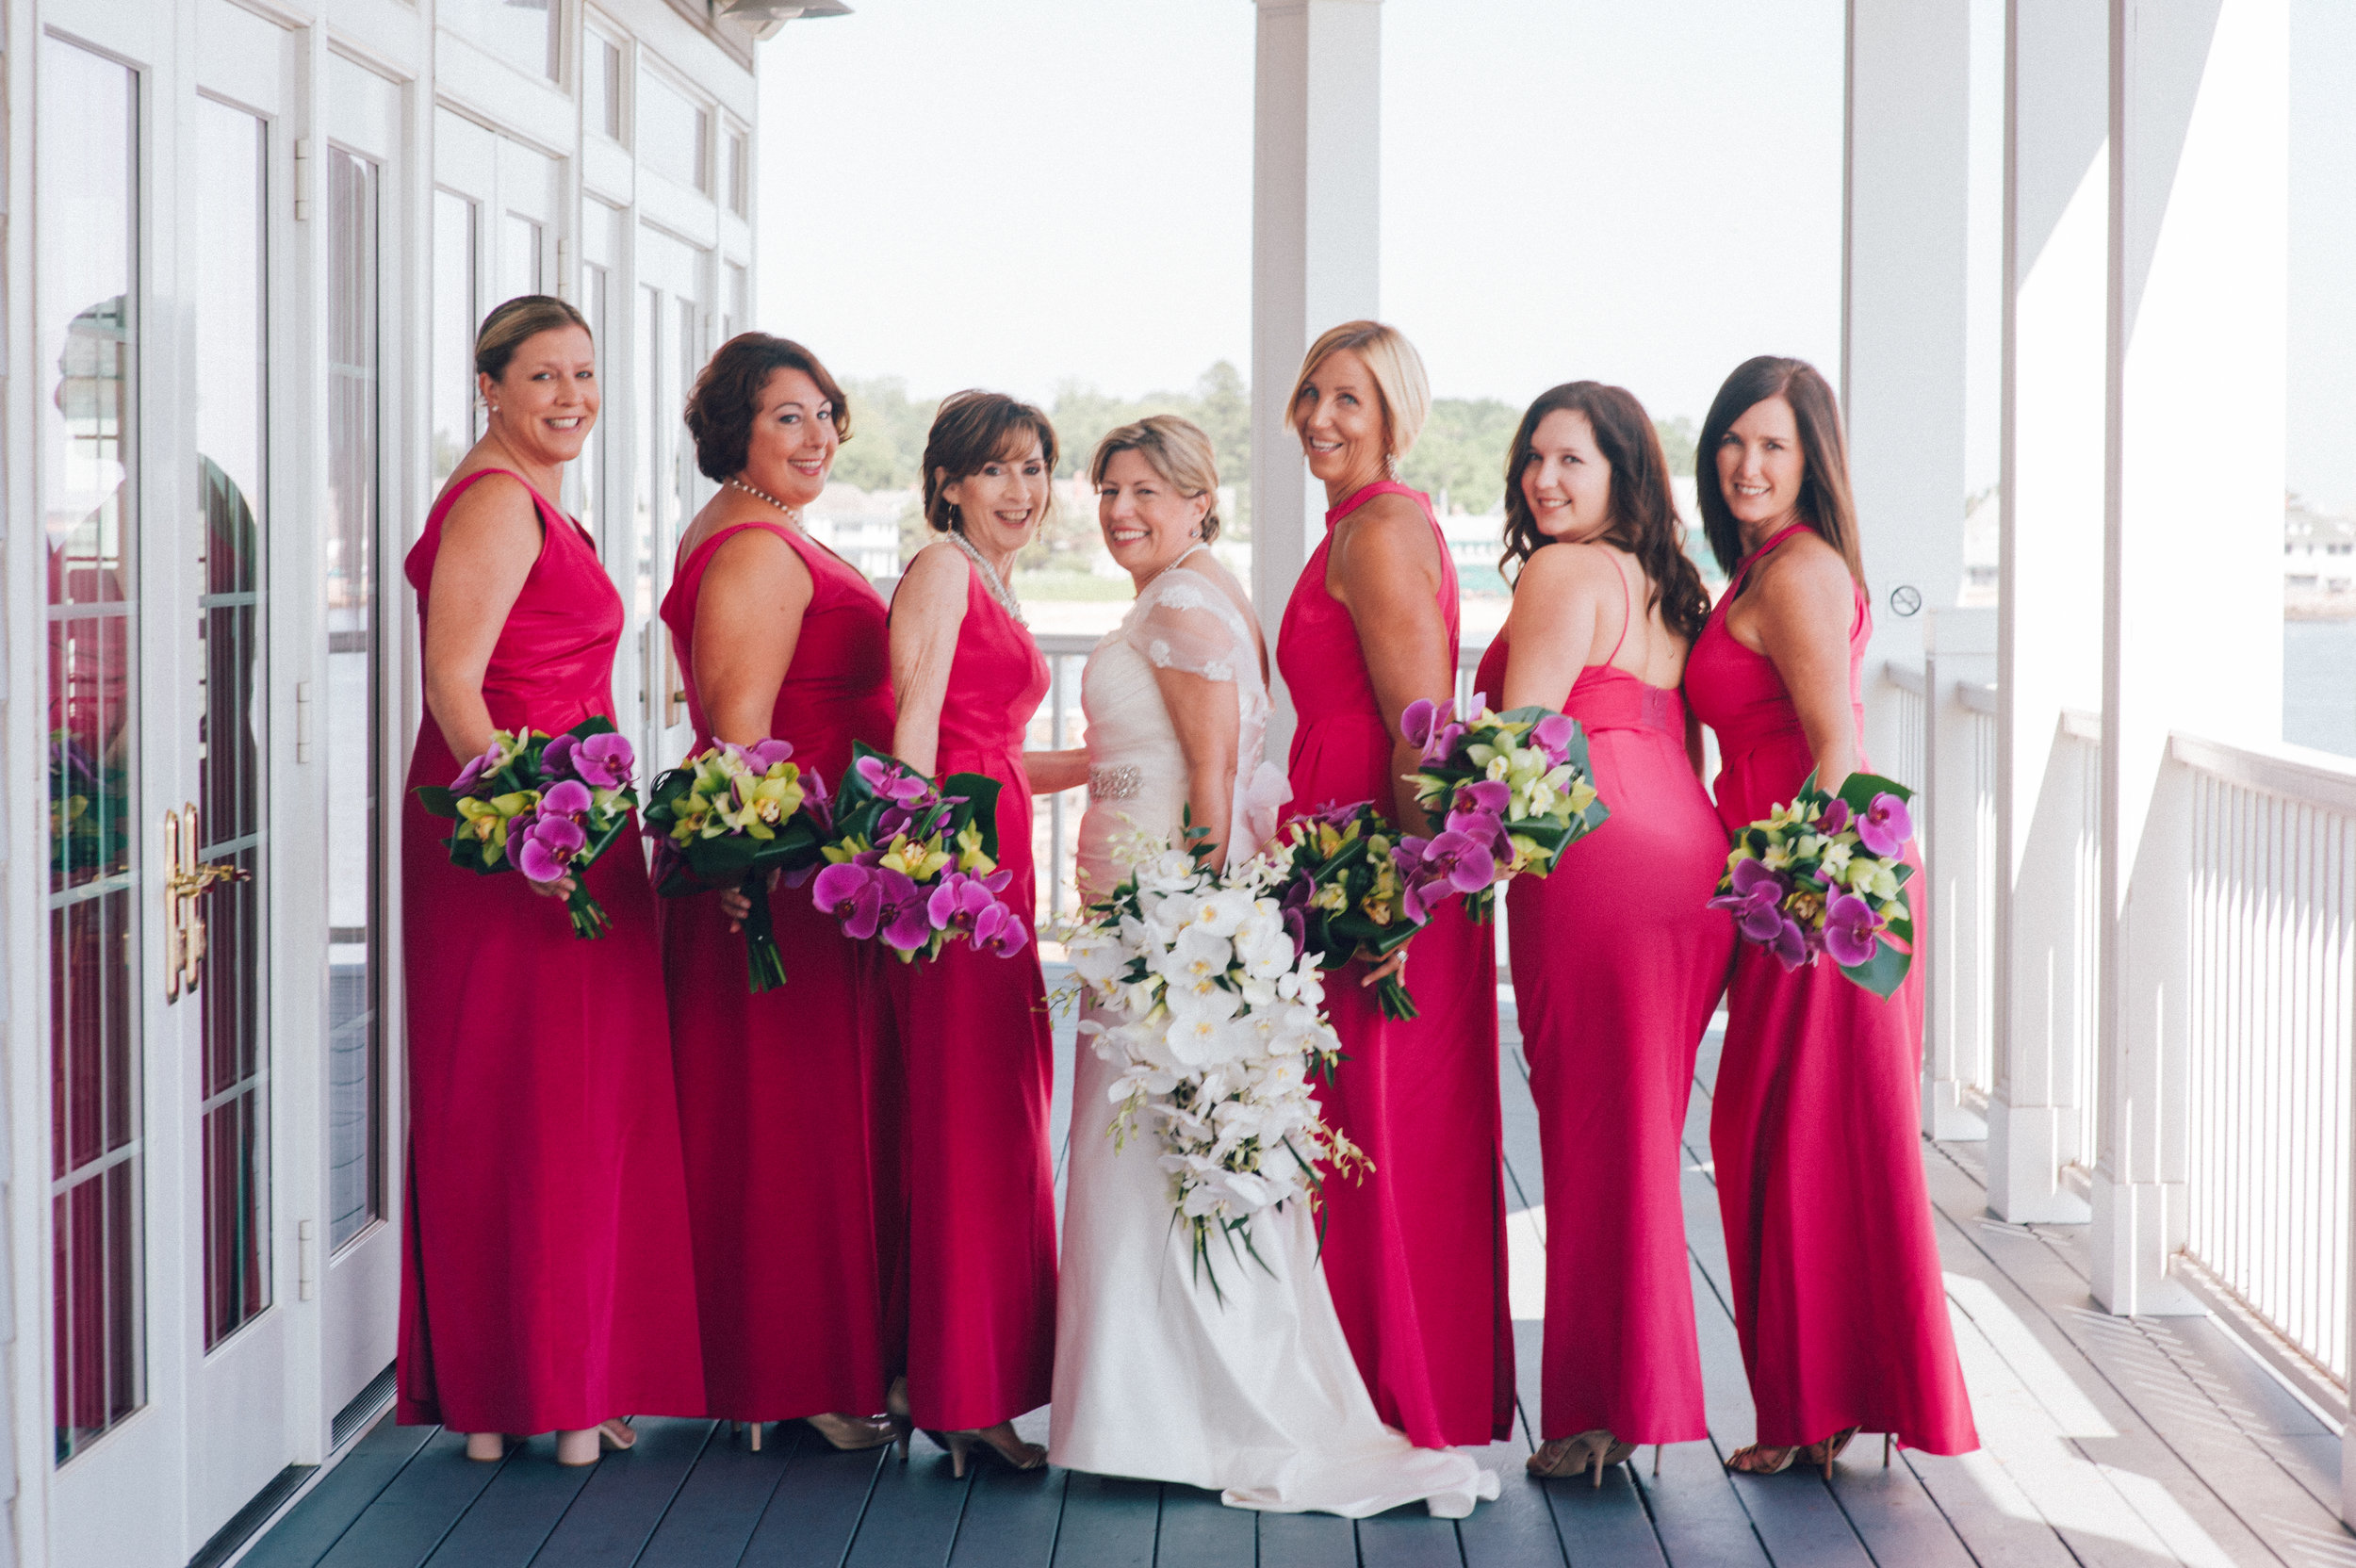 Destination wedding with bridesmaids in pink dresses